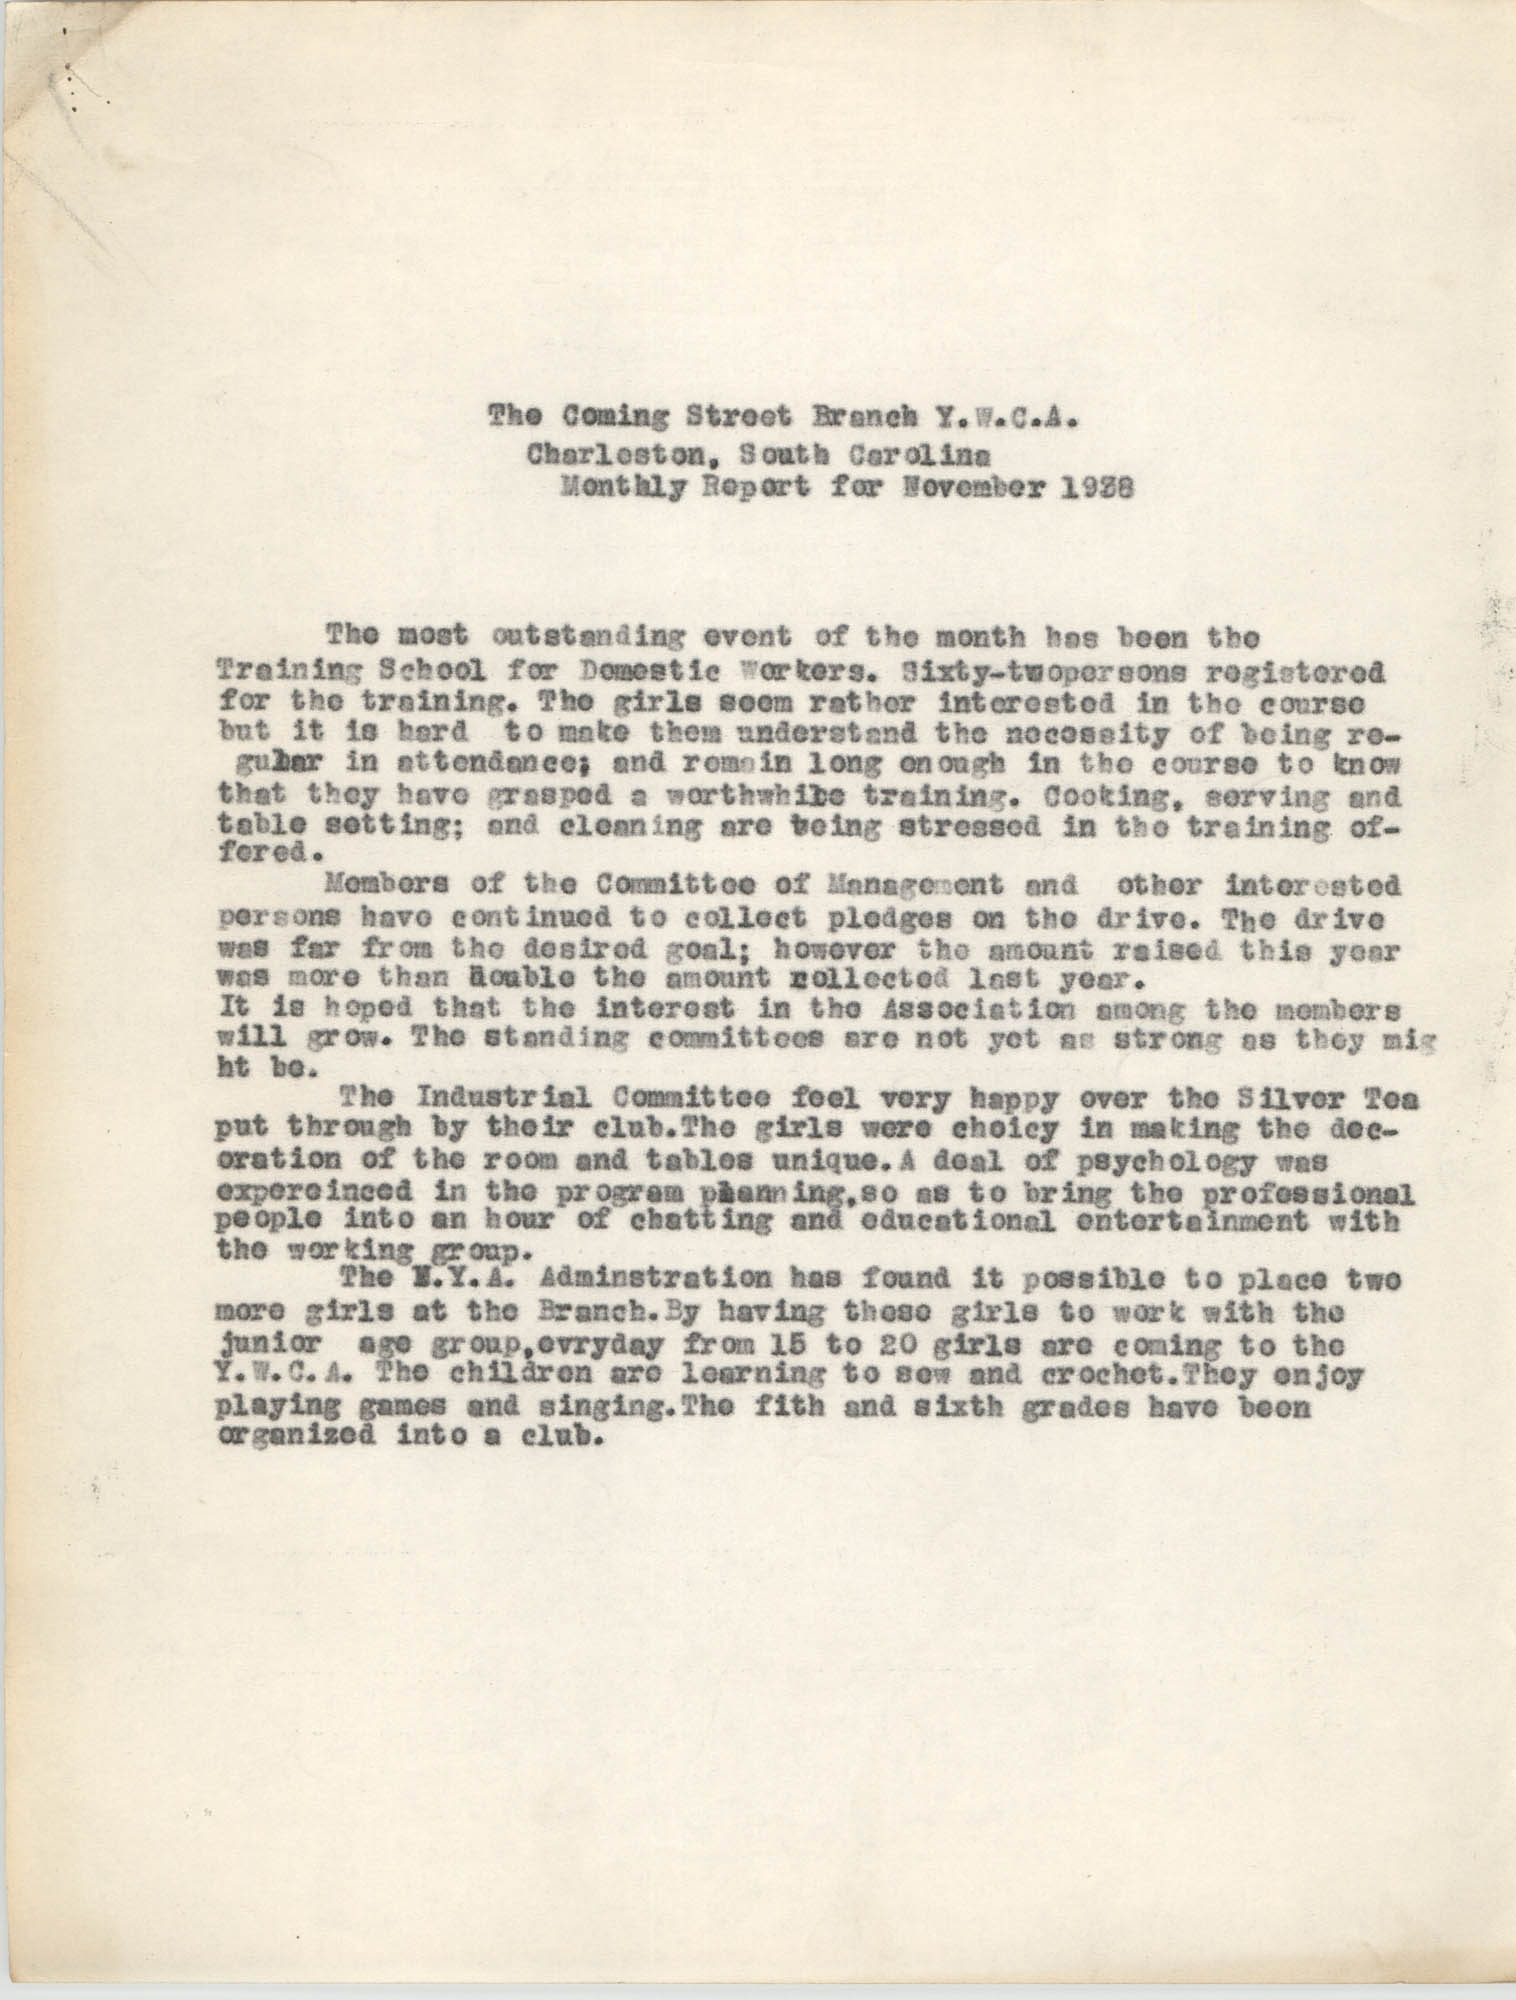 Monthly Report for the Coming Street Y.W.C.A., November 1938